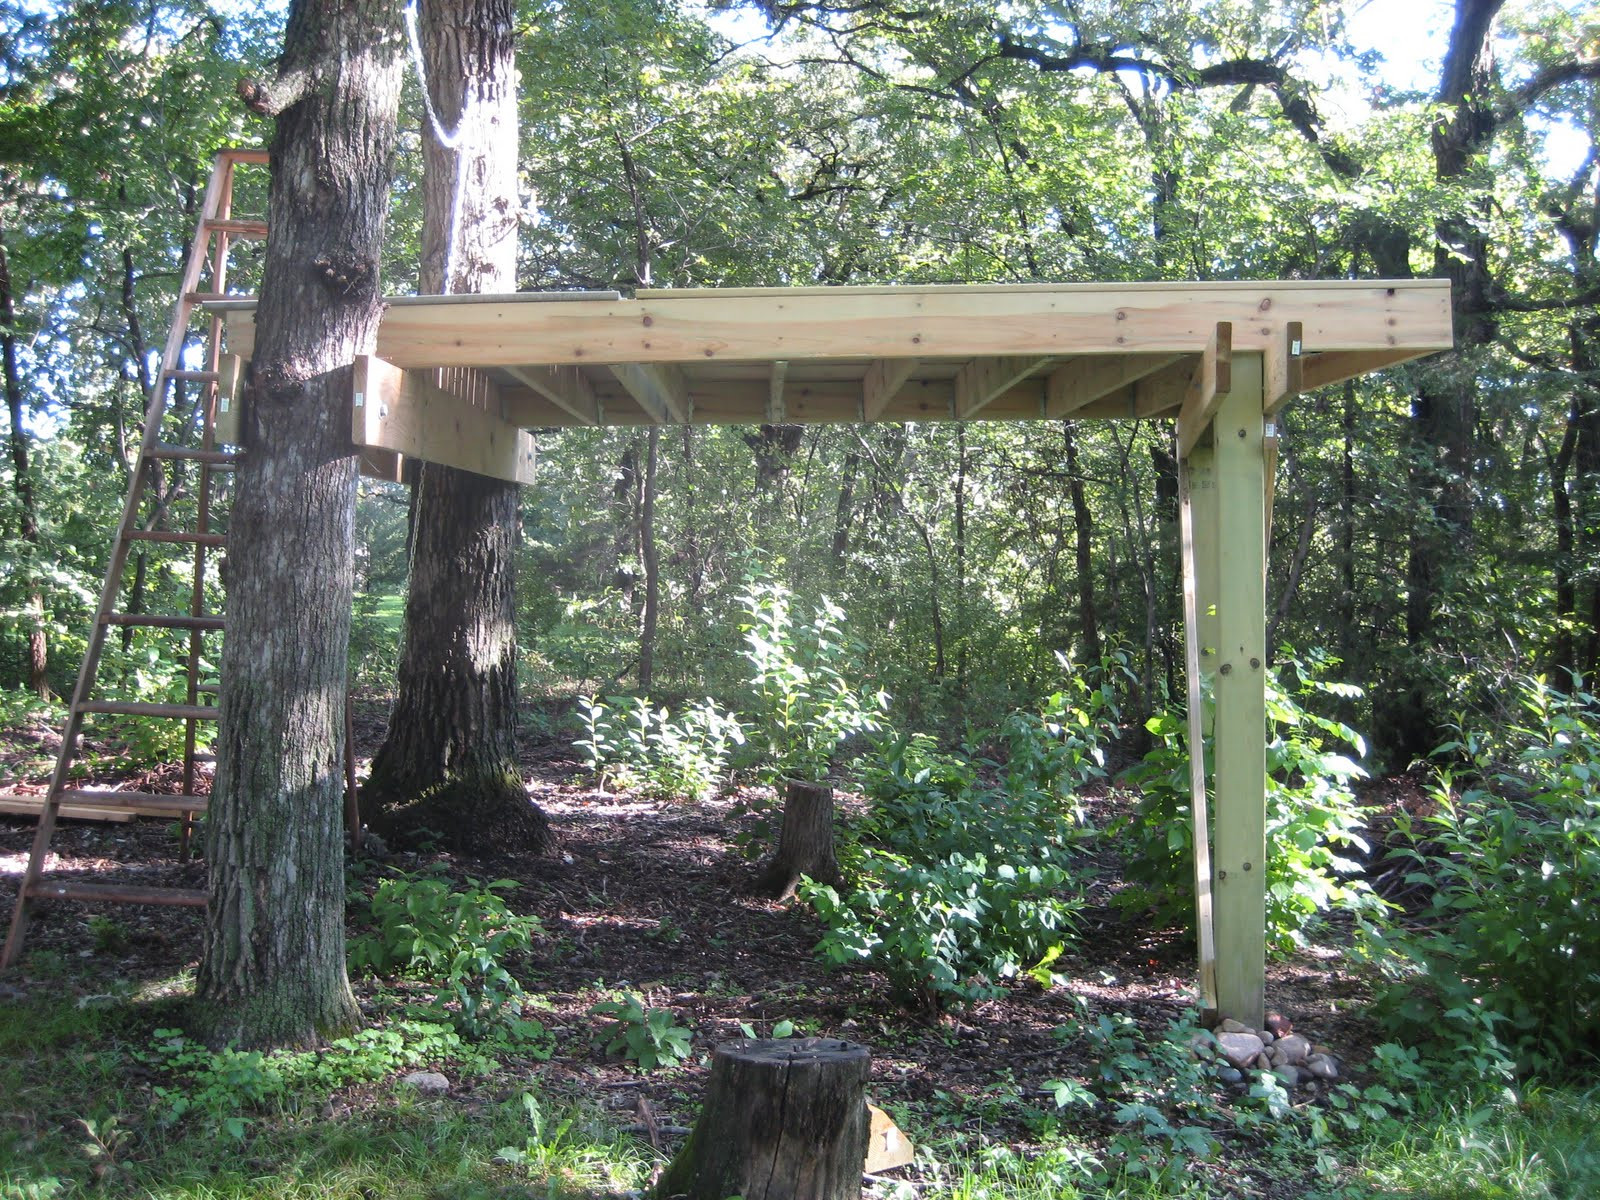 Best ideas about DIY Treehouse Kits . Save or Pin Playhouse Treehouse Kit Tree House Kits Lowes Build Your Now.